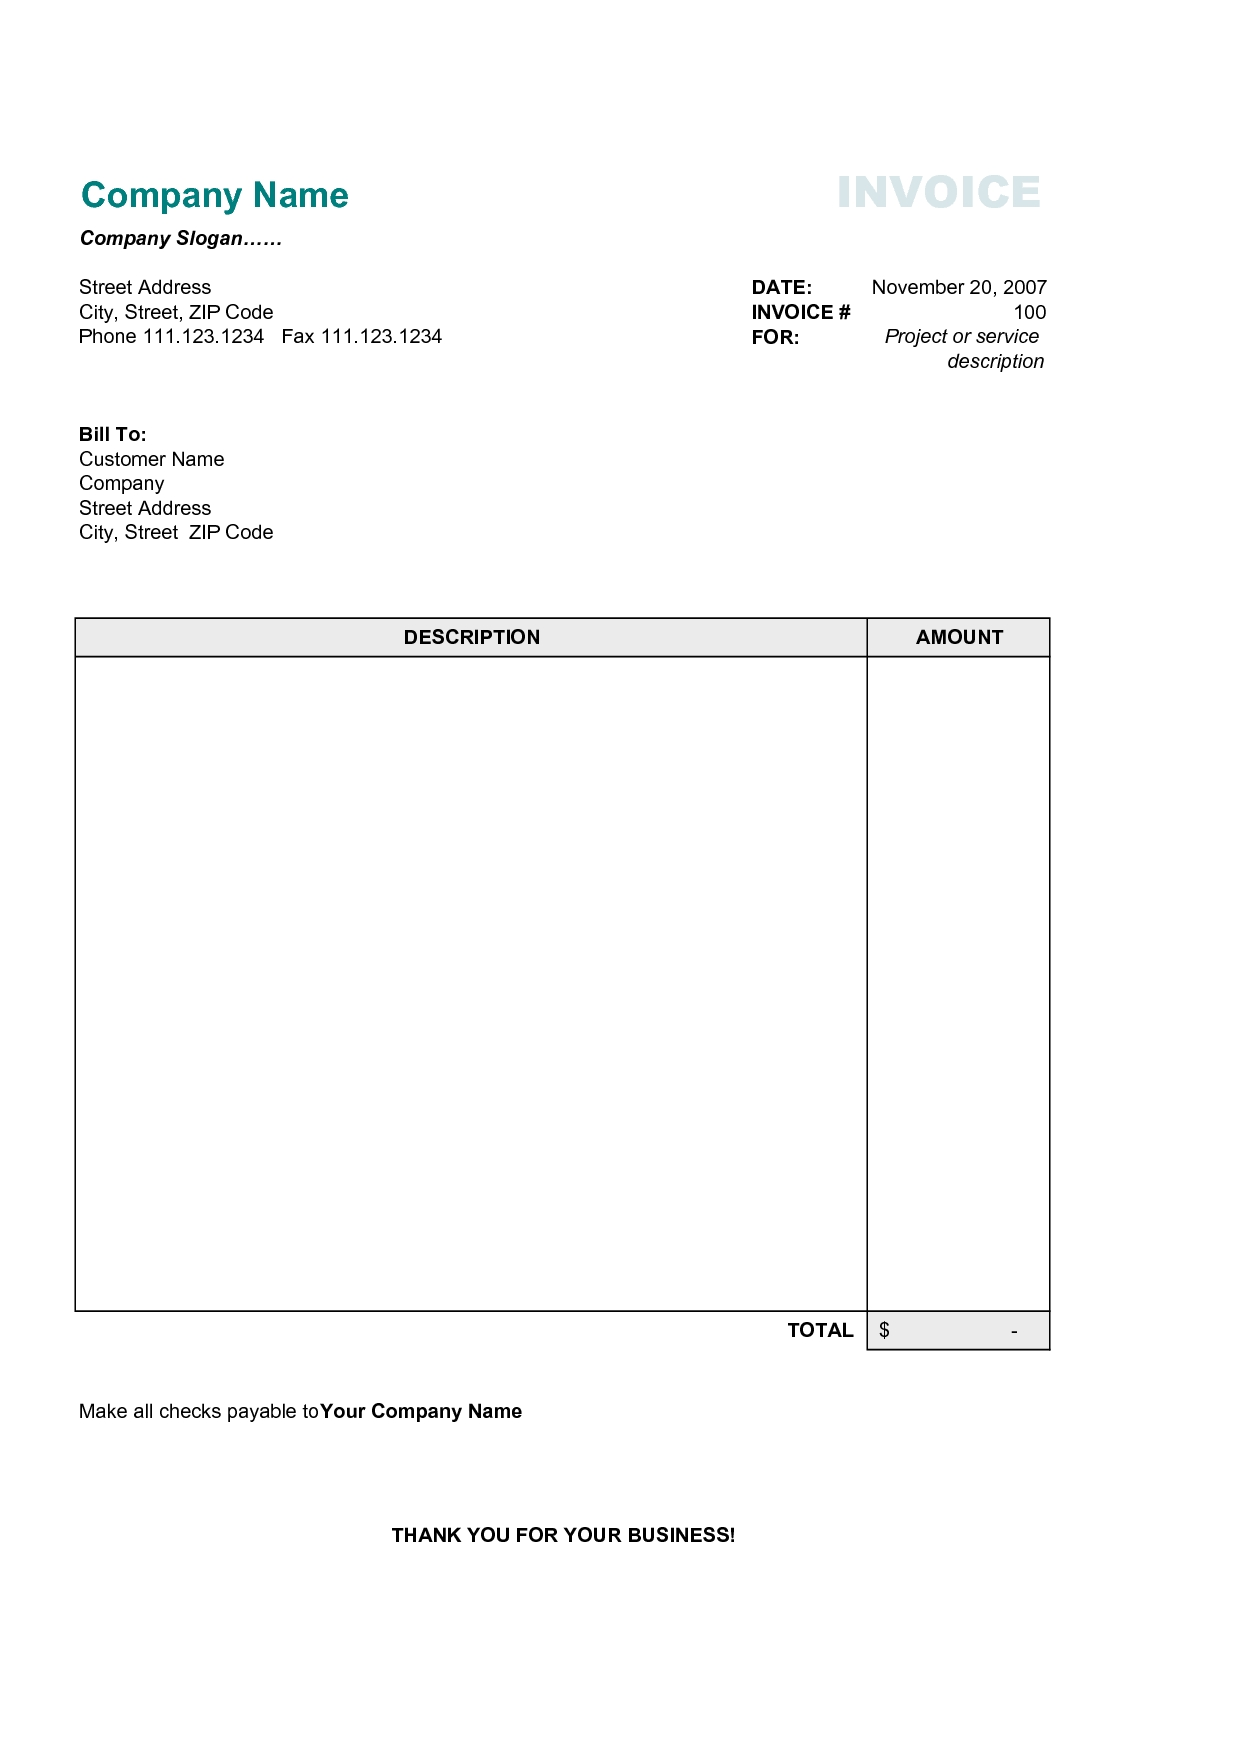 business invoice forms business invoice forms